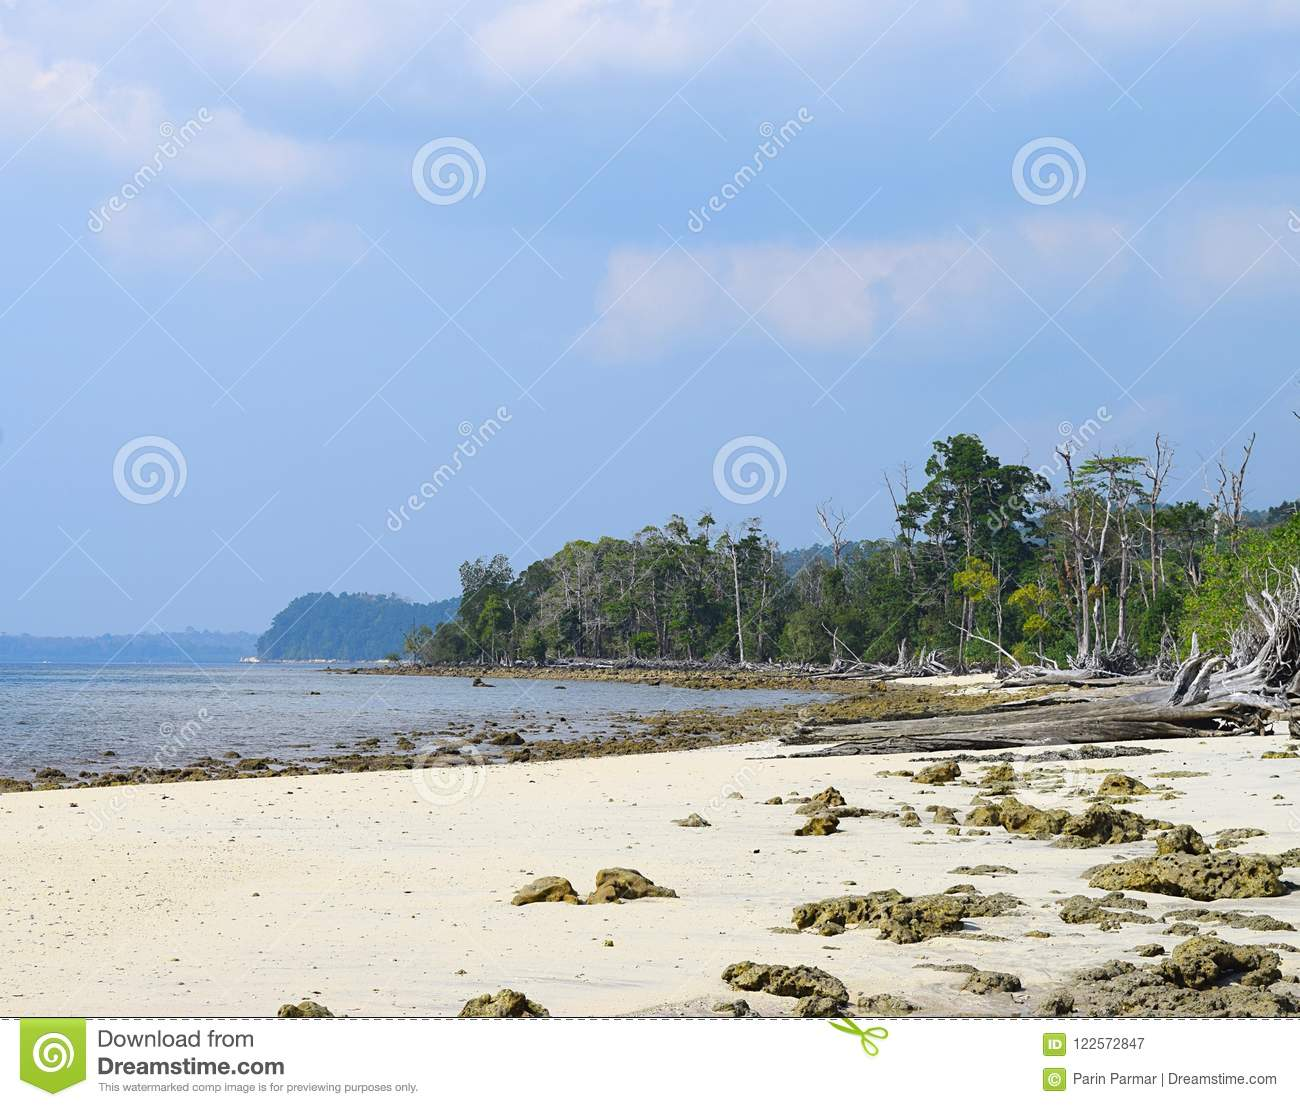 Havelock Island: Peaceful Rocky Elephant Beach With Sea Mohua Trees And